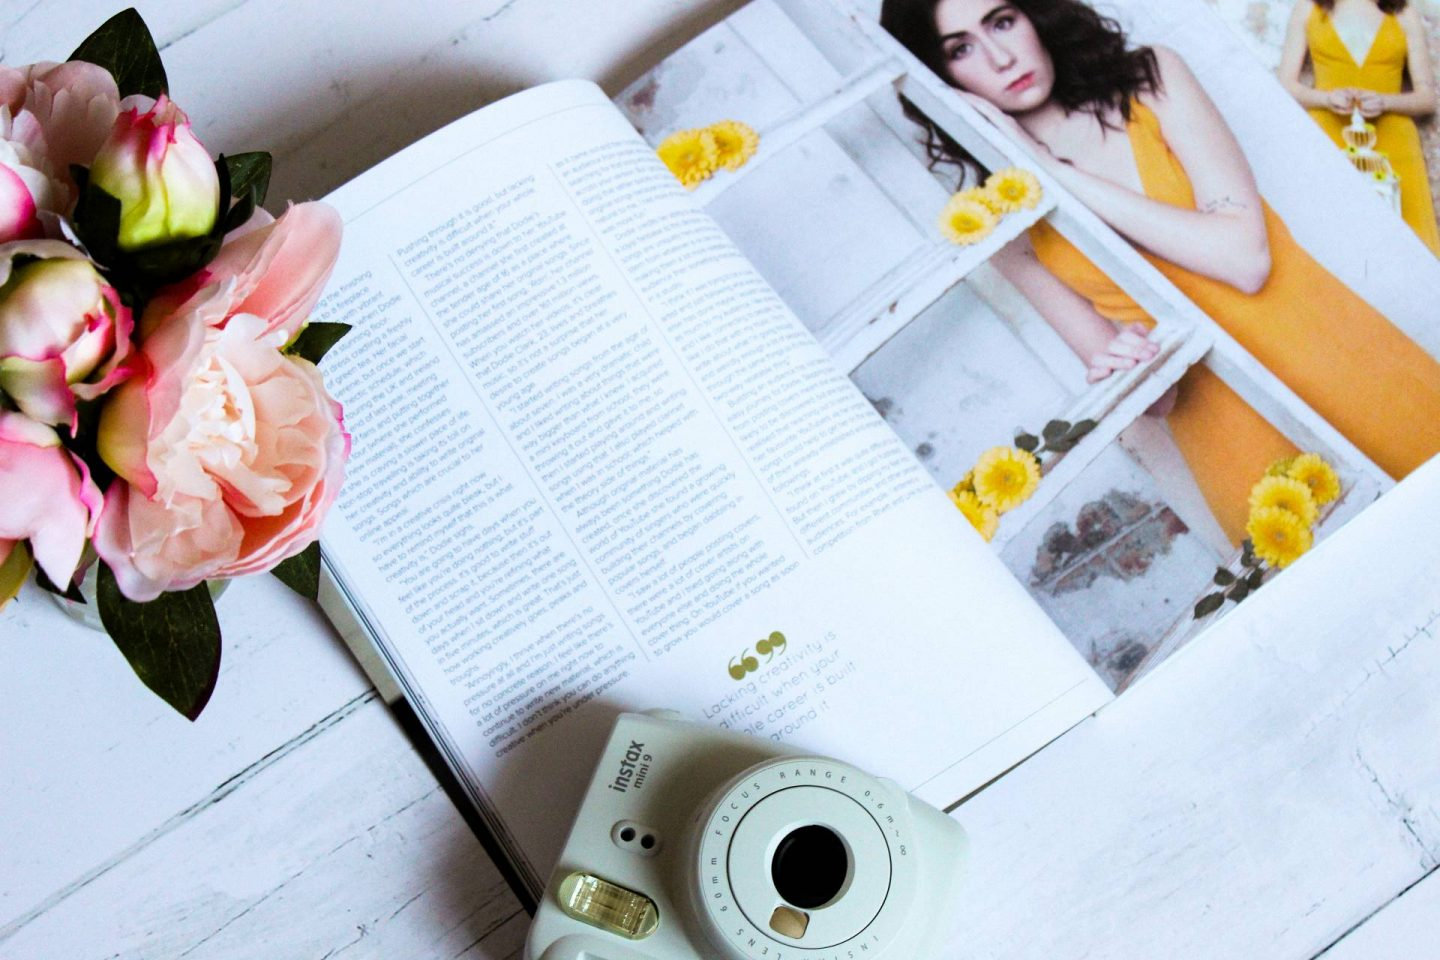 Blogosphere issue 17 with dodie cover star